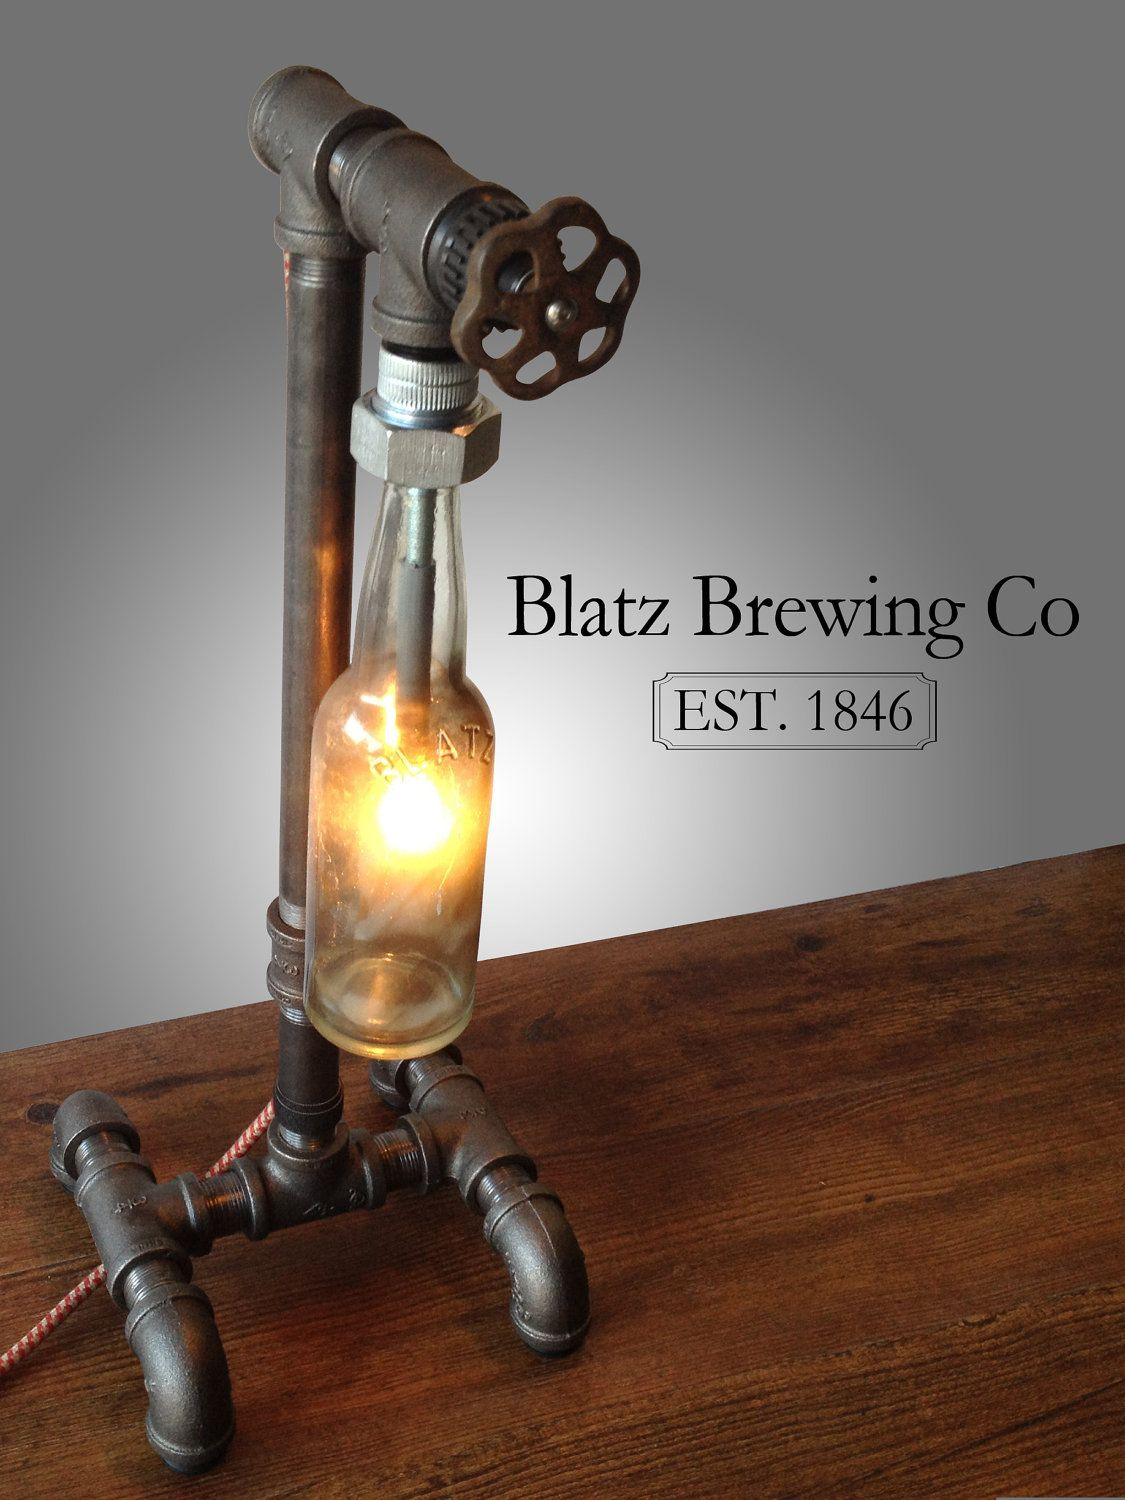 etsy industrial lighting. Items Similar To Industrial Brewery Lamp - Blatz Brewing Company Steampunk Fixture Bar Decor Lighting On Etsy I